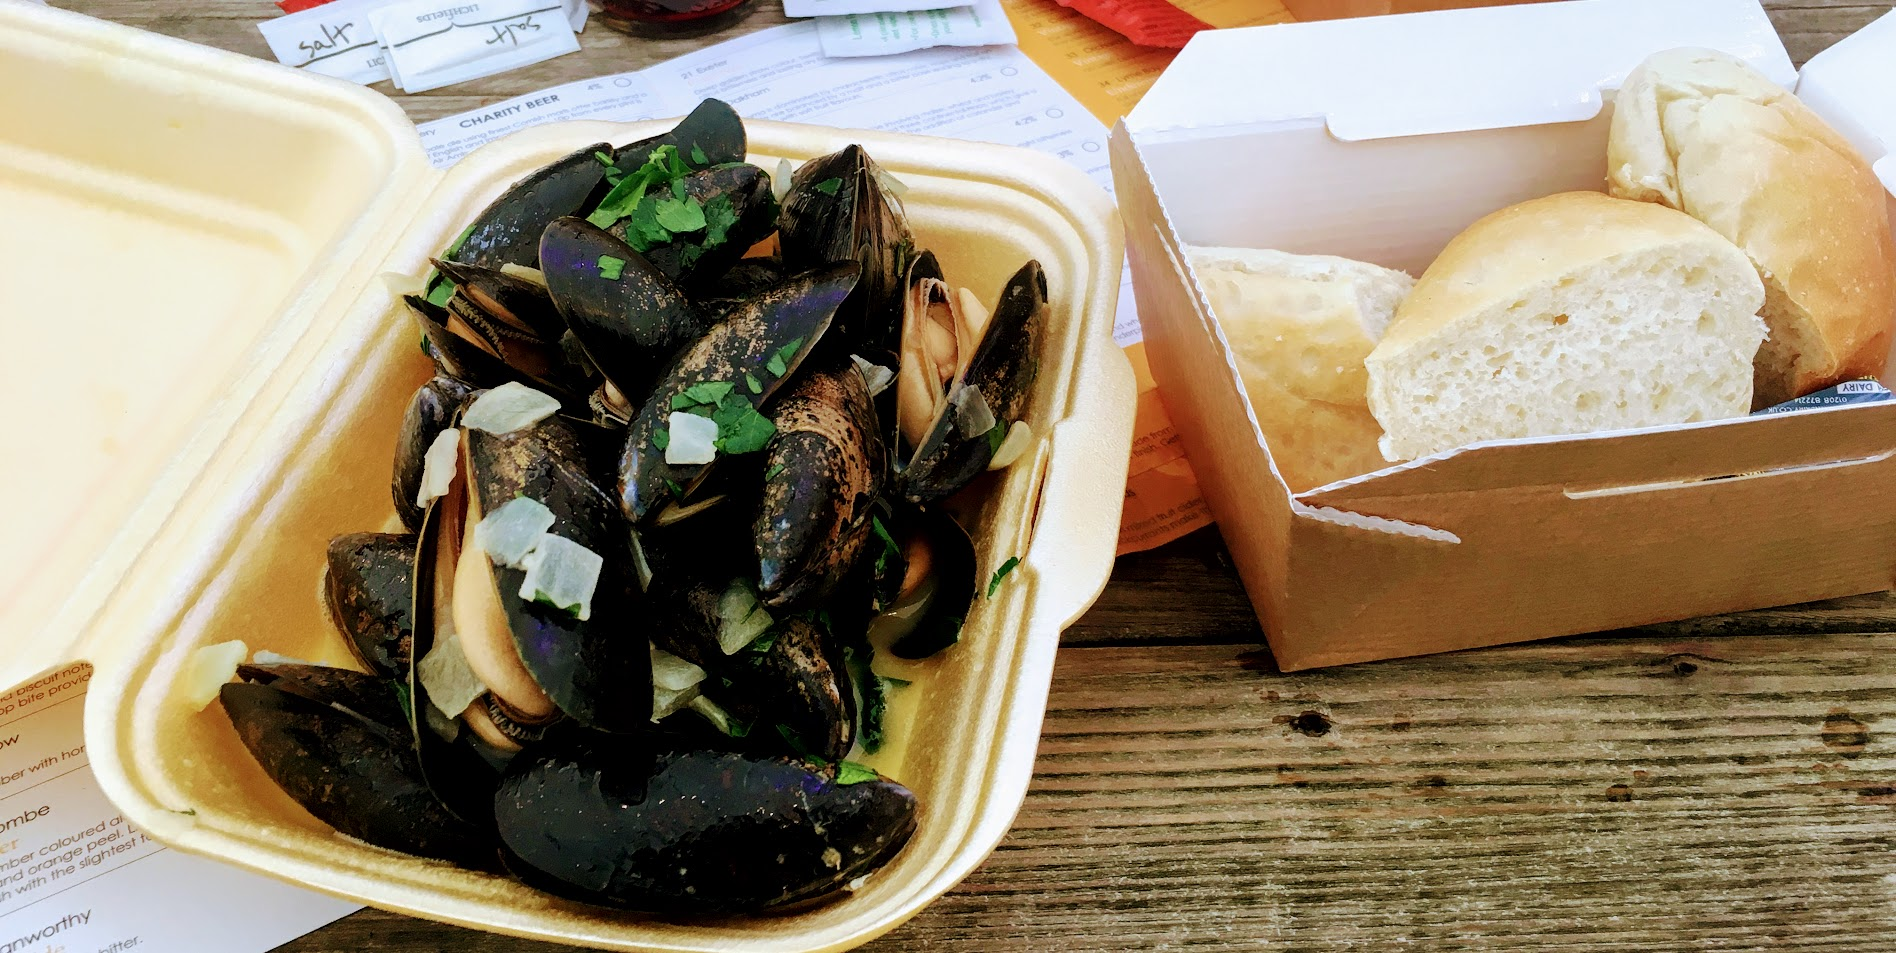 Cornwall Beer and Mussel Festival